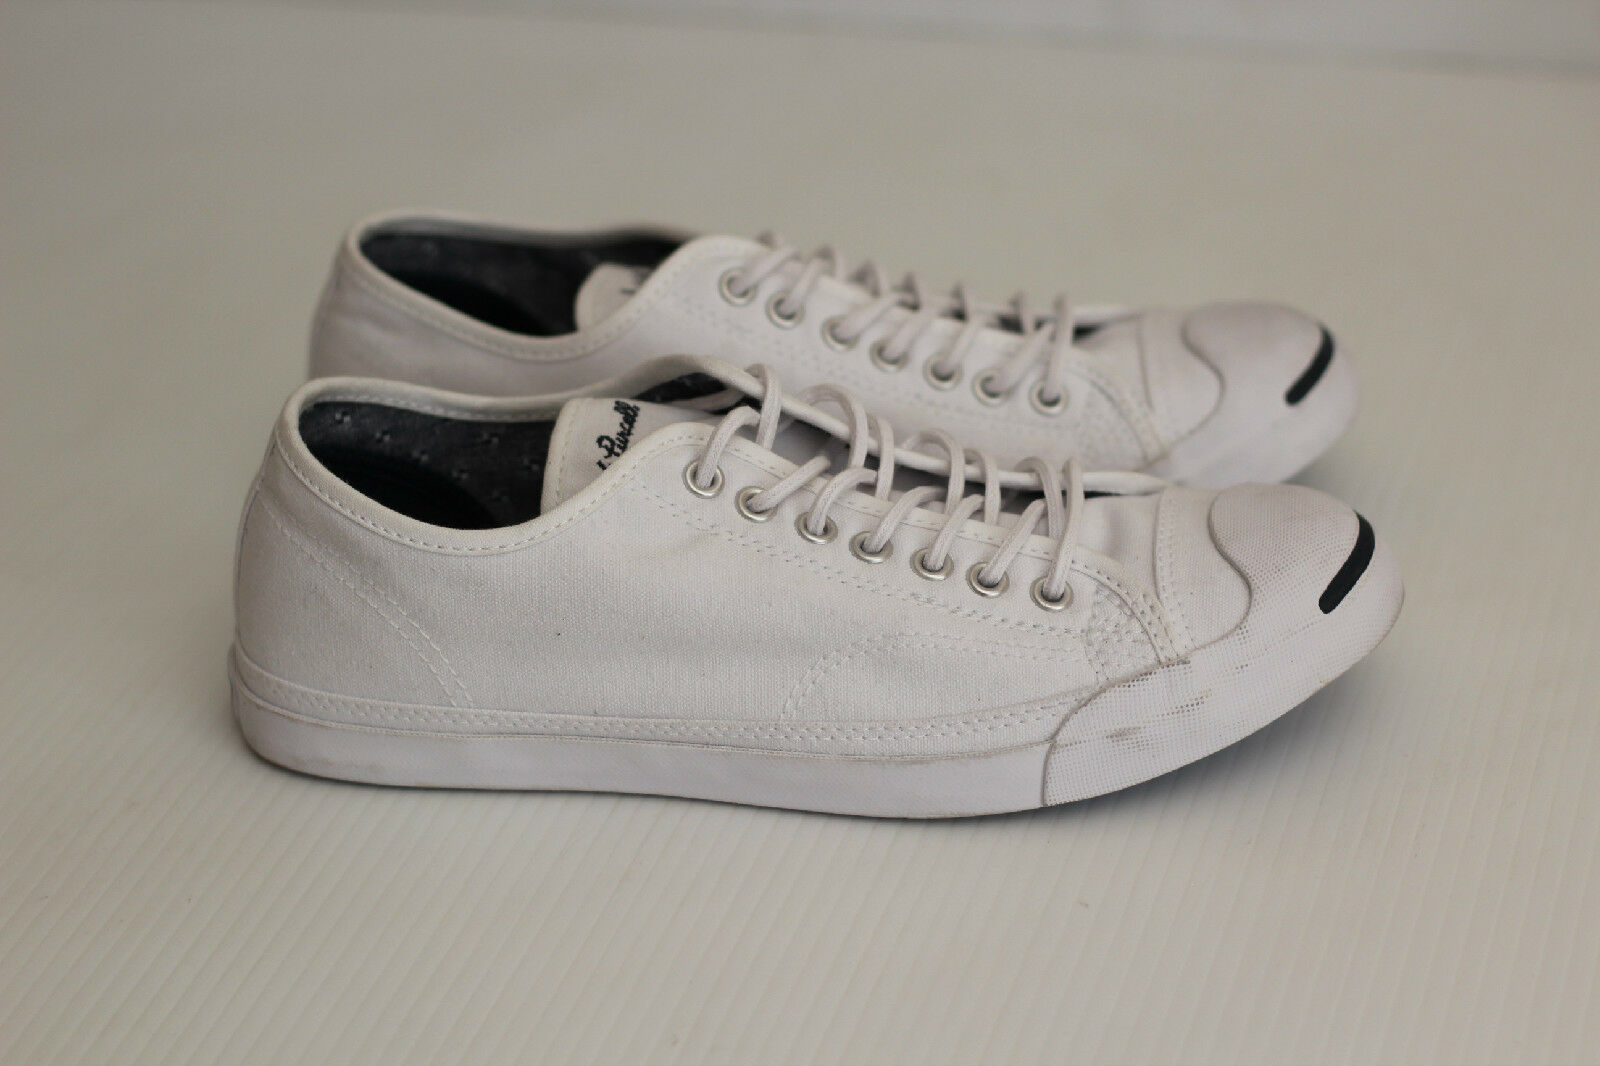 NEW Womens Converse Jack Purcell Sneakers Lace Up Low Top 9.5 - White - Size 9.5 Top 13f526